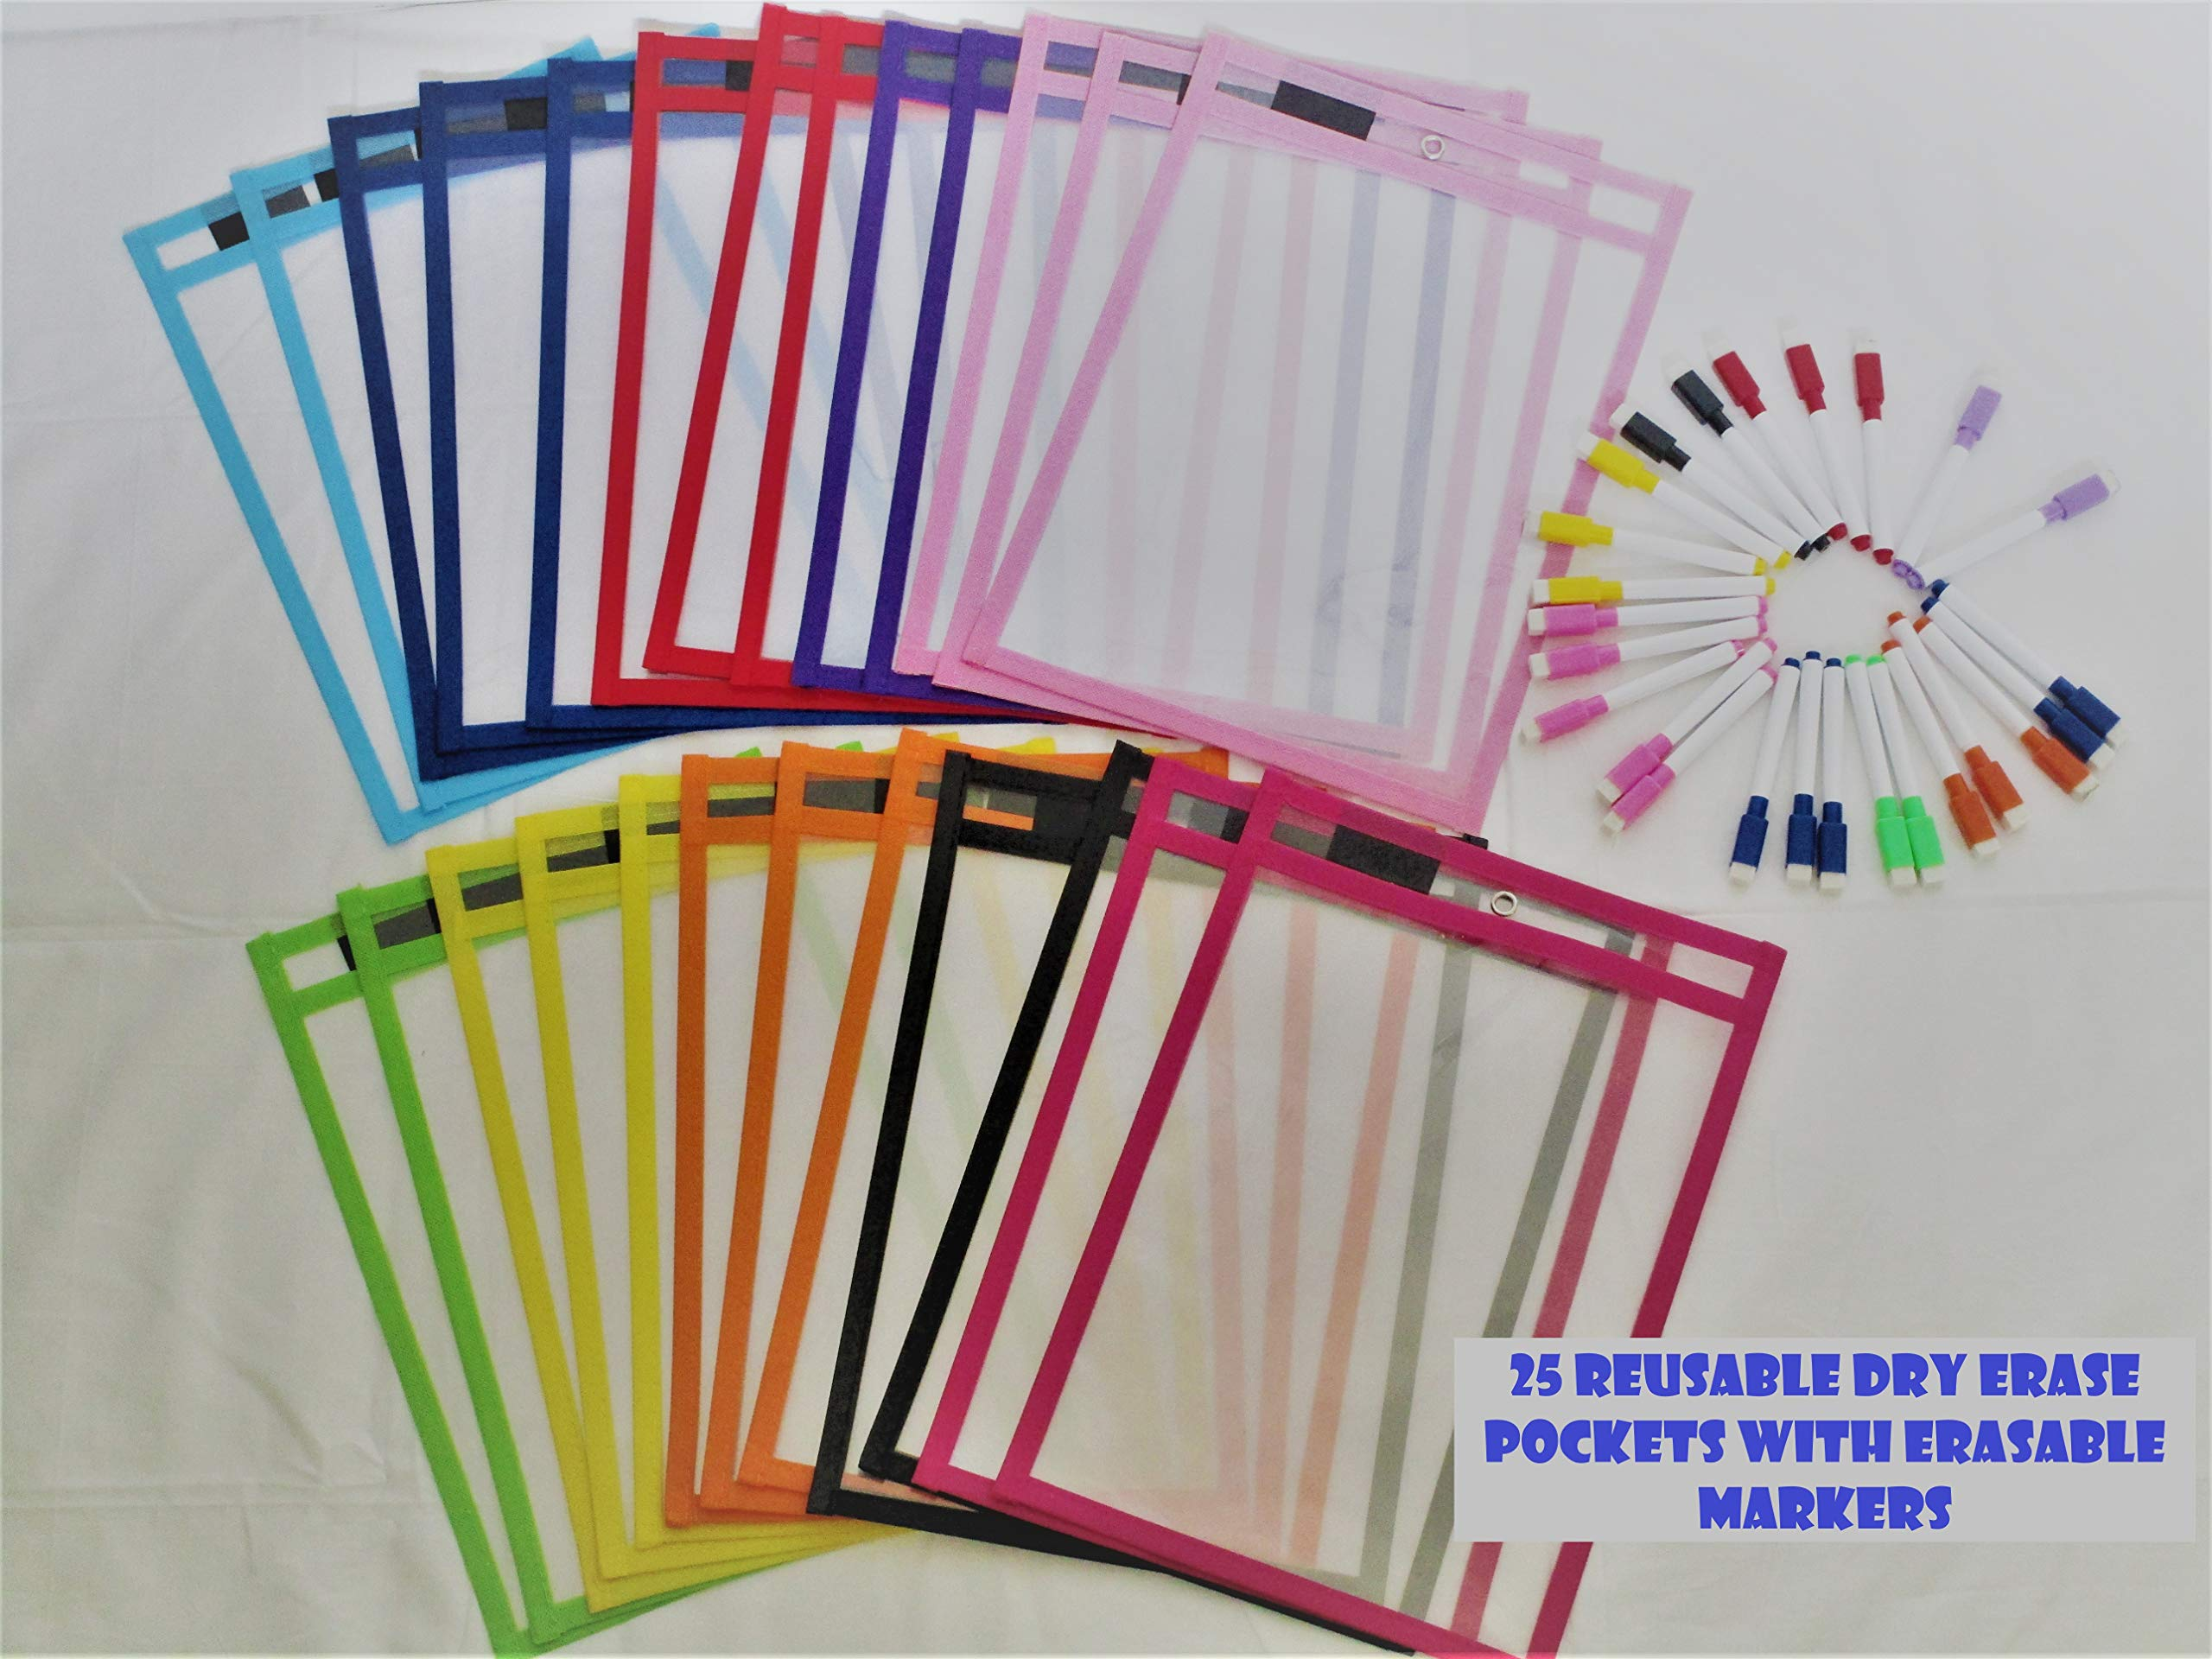 Reusable Dry-Erase pockets 25 pack with 25 Erasable Markers (25) by ZM777 (Image #1)